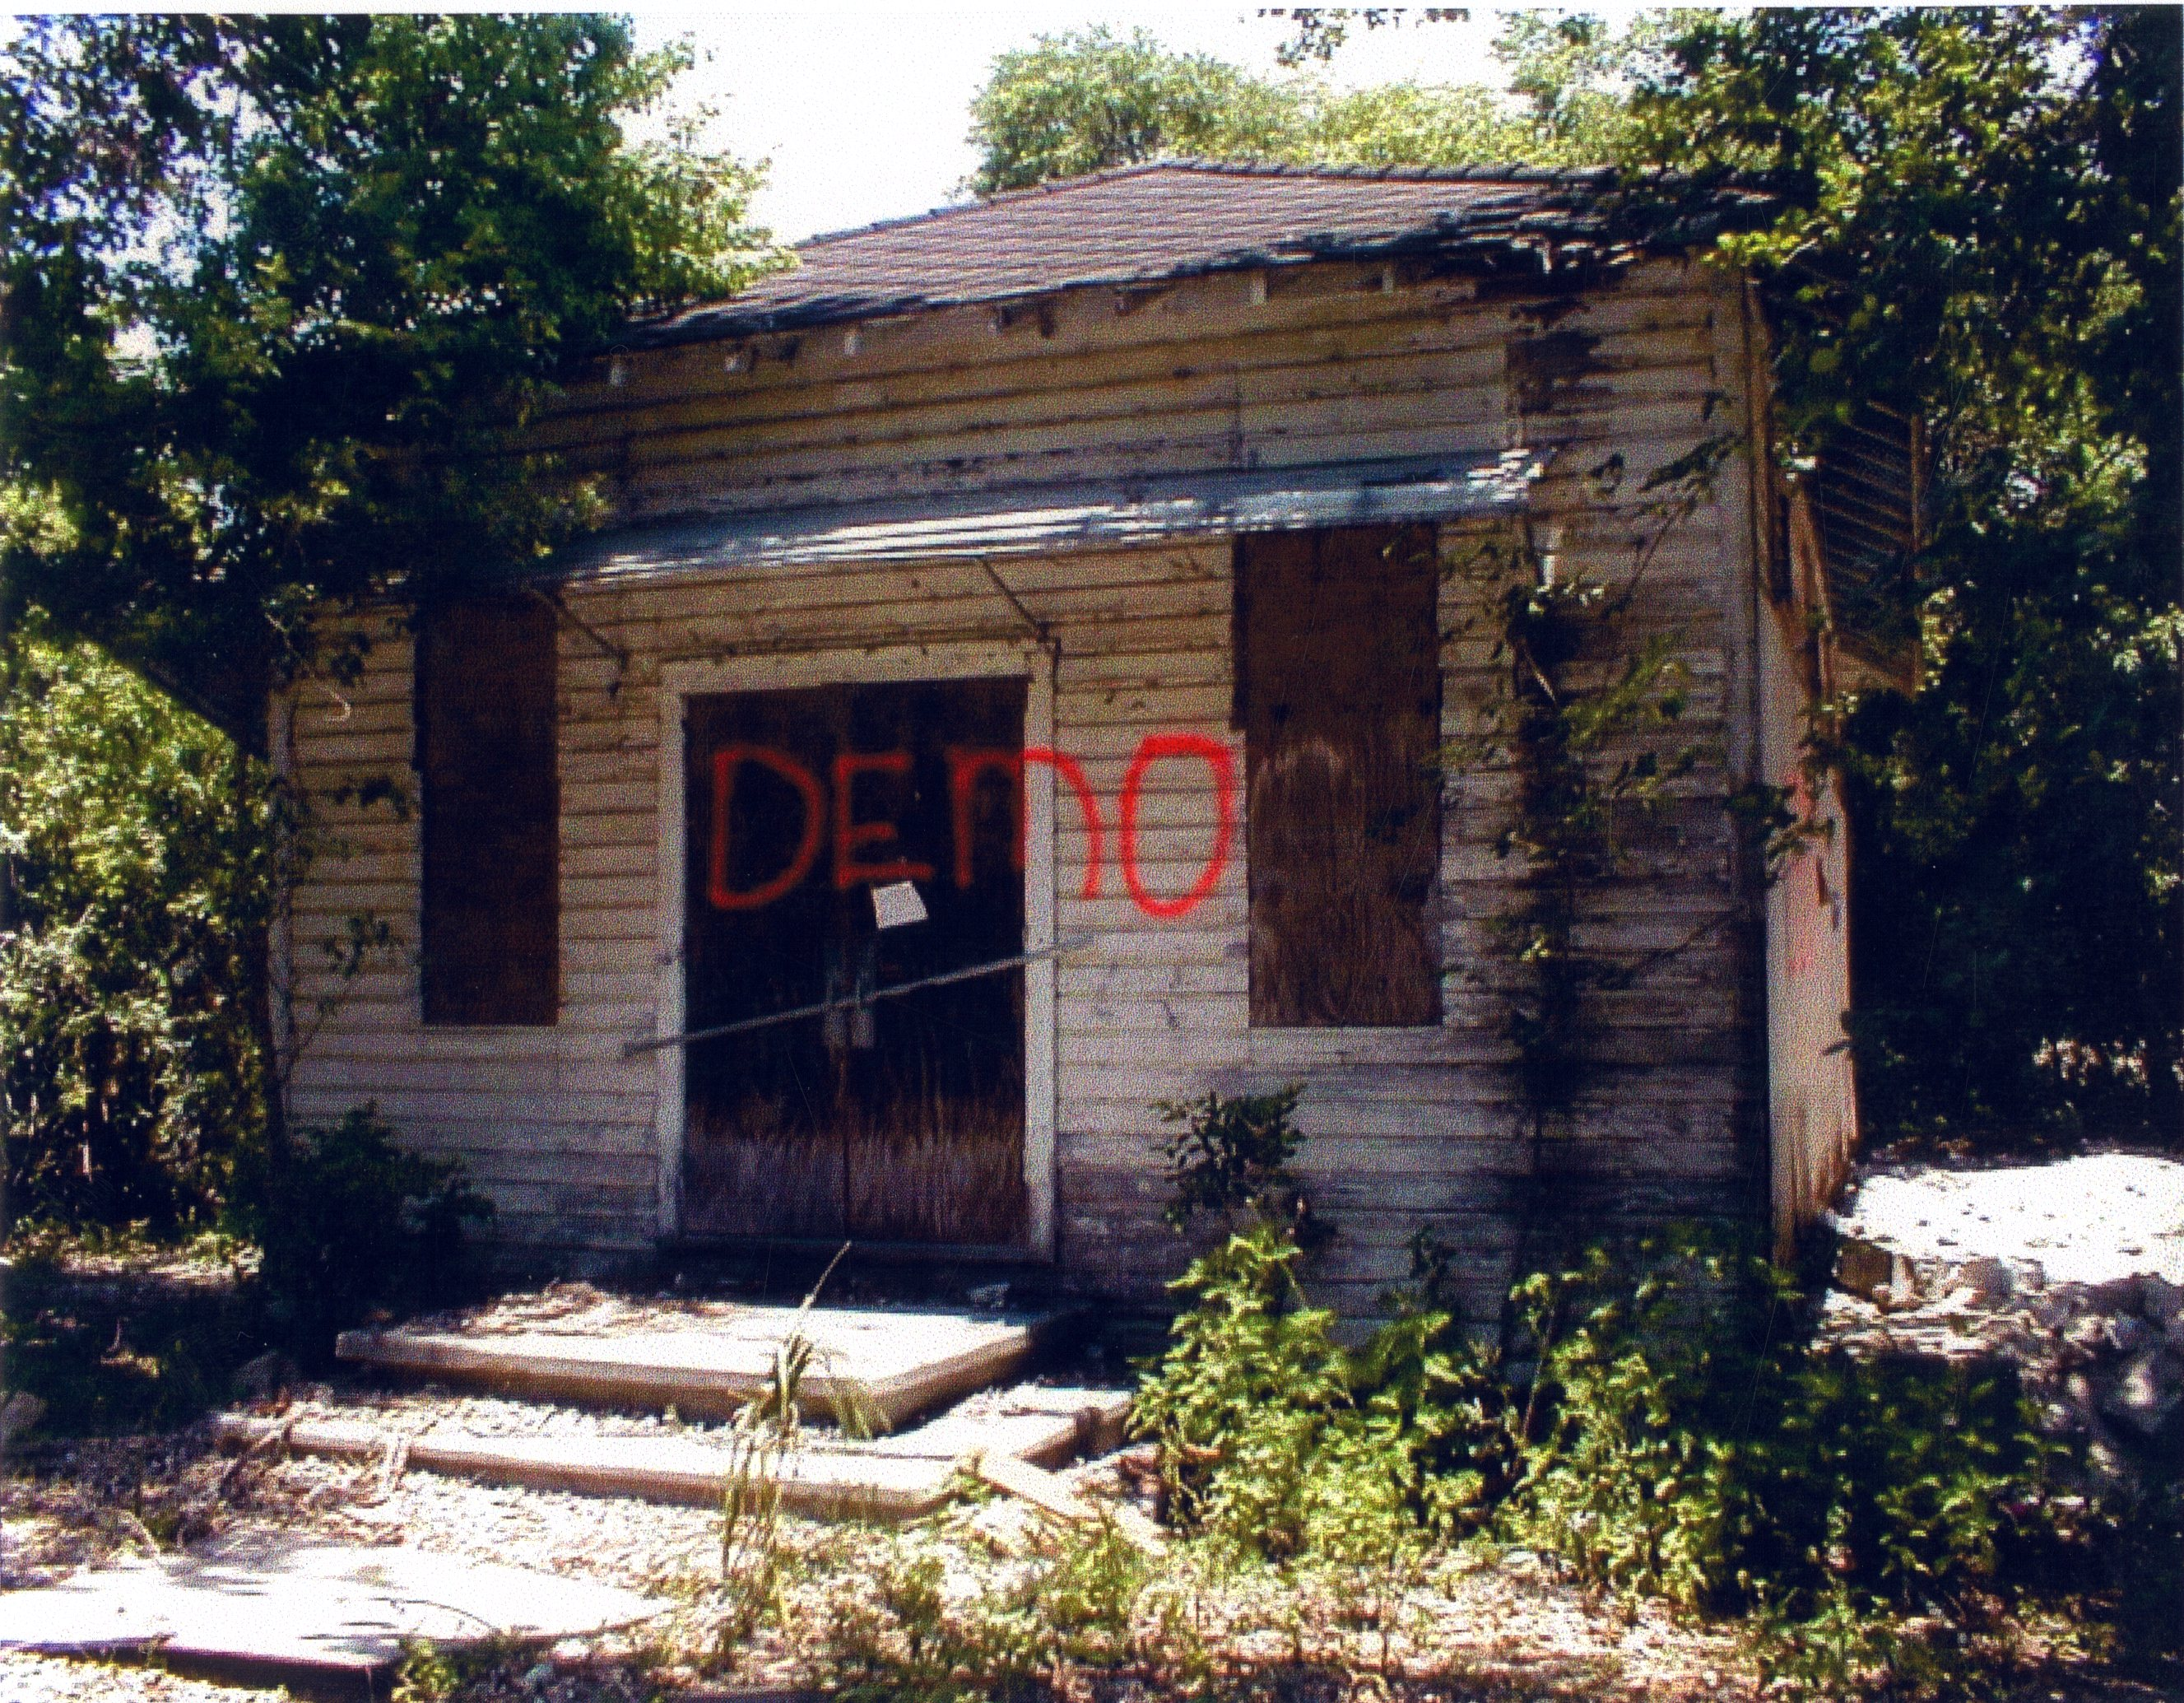 Union Academy building before it was moved to Heritage Village in Largo, Florida, pre-2000.